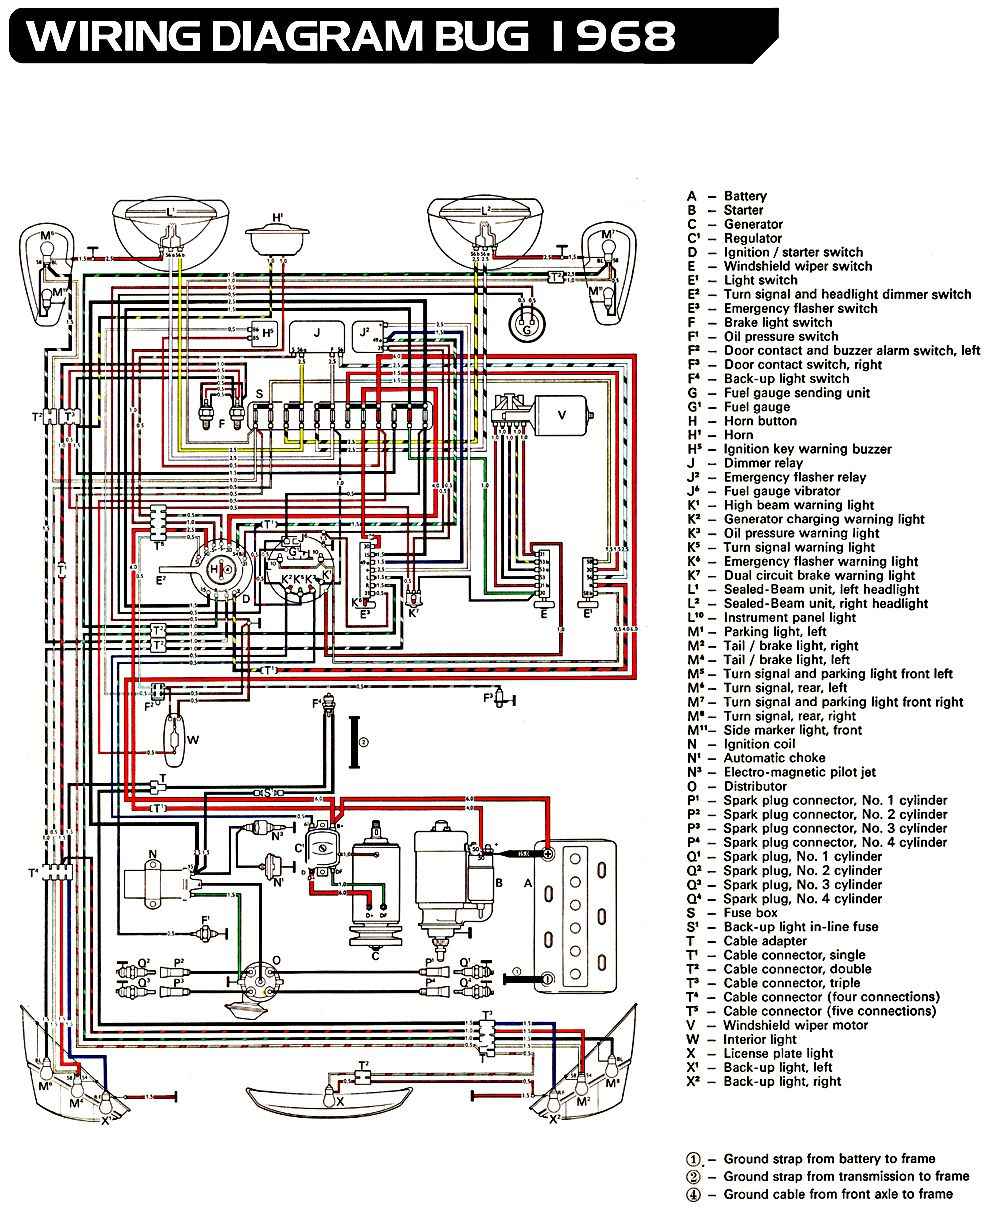 Vw Bug Ignition Wiring Diagram - 73 vw wiring diagram free .